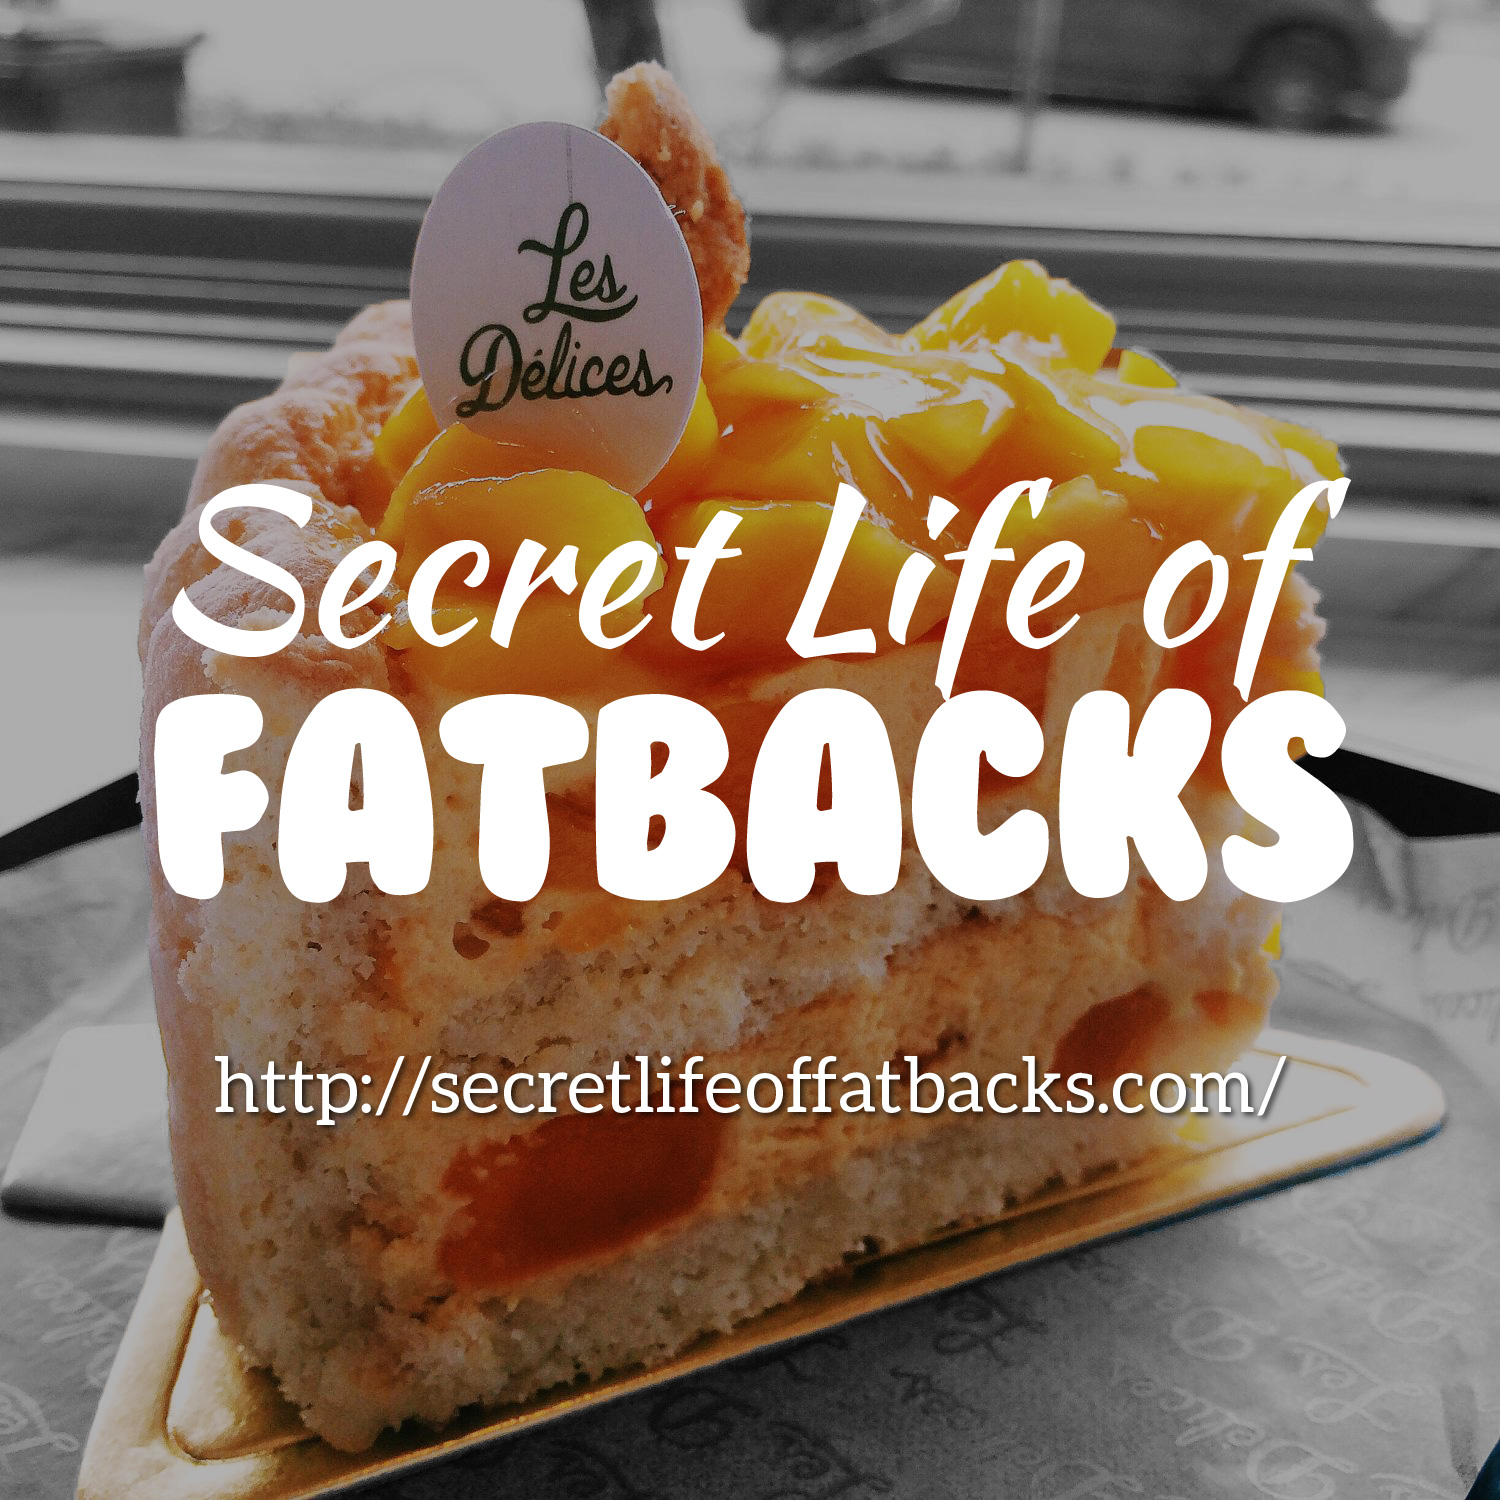 Secret Life of Fatbacks | Secret Life of Fatbacks is a Singapore ...